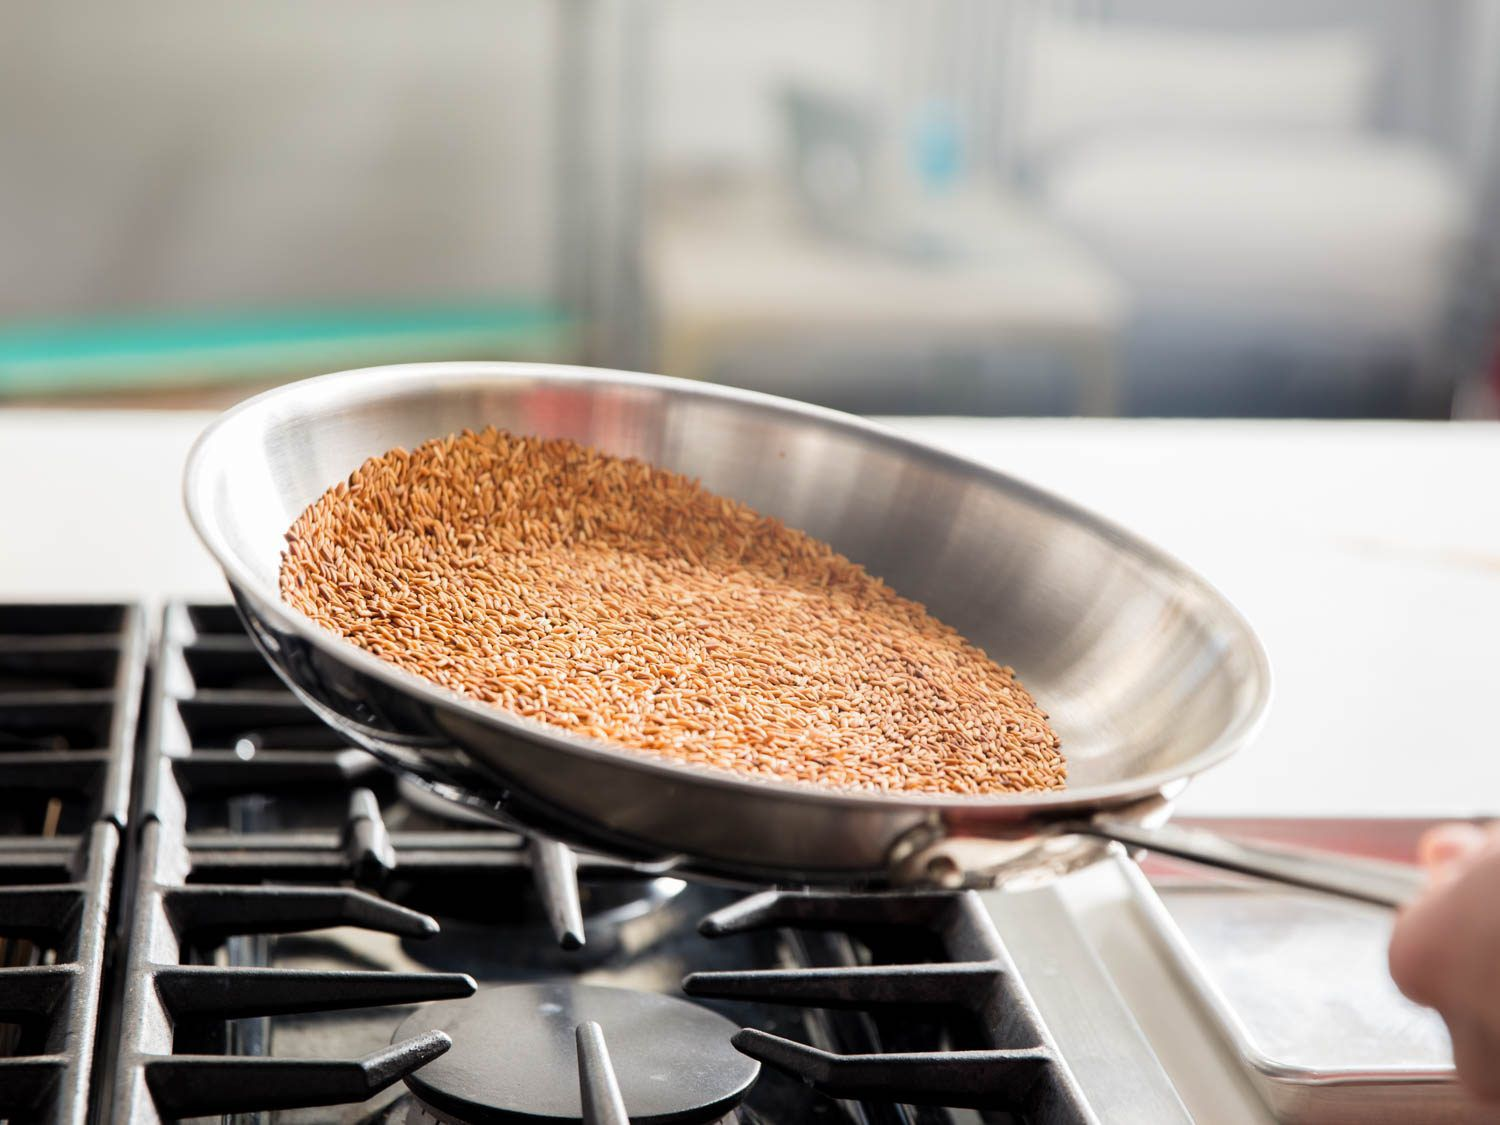 Tossing toasted rice in a skillet